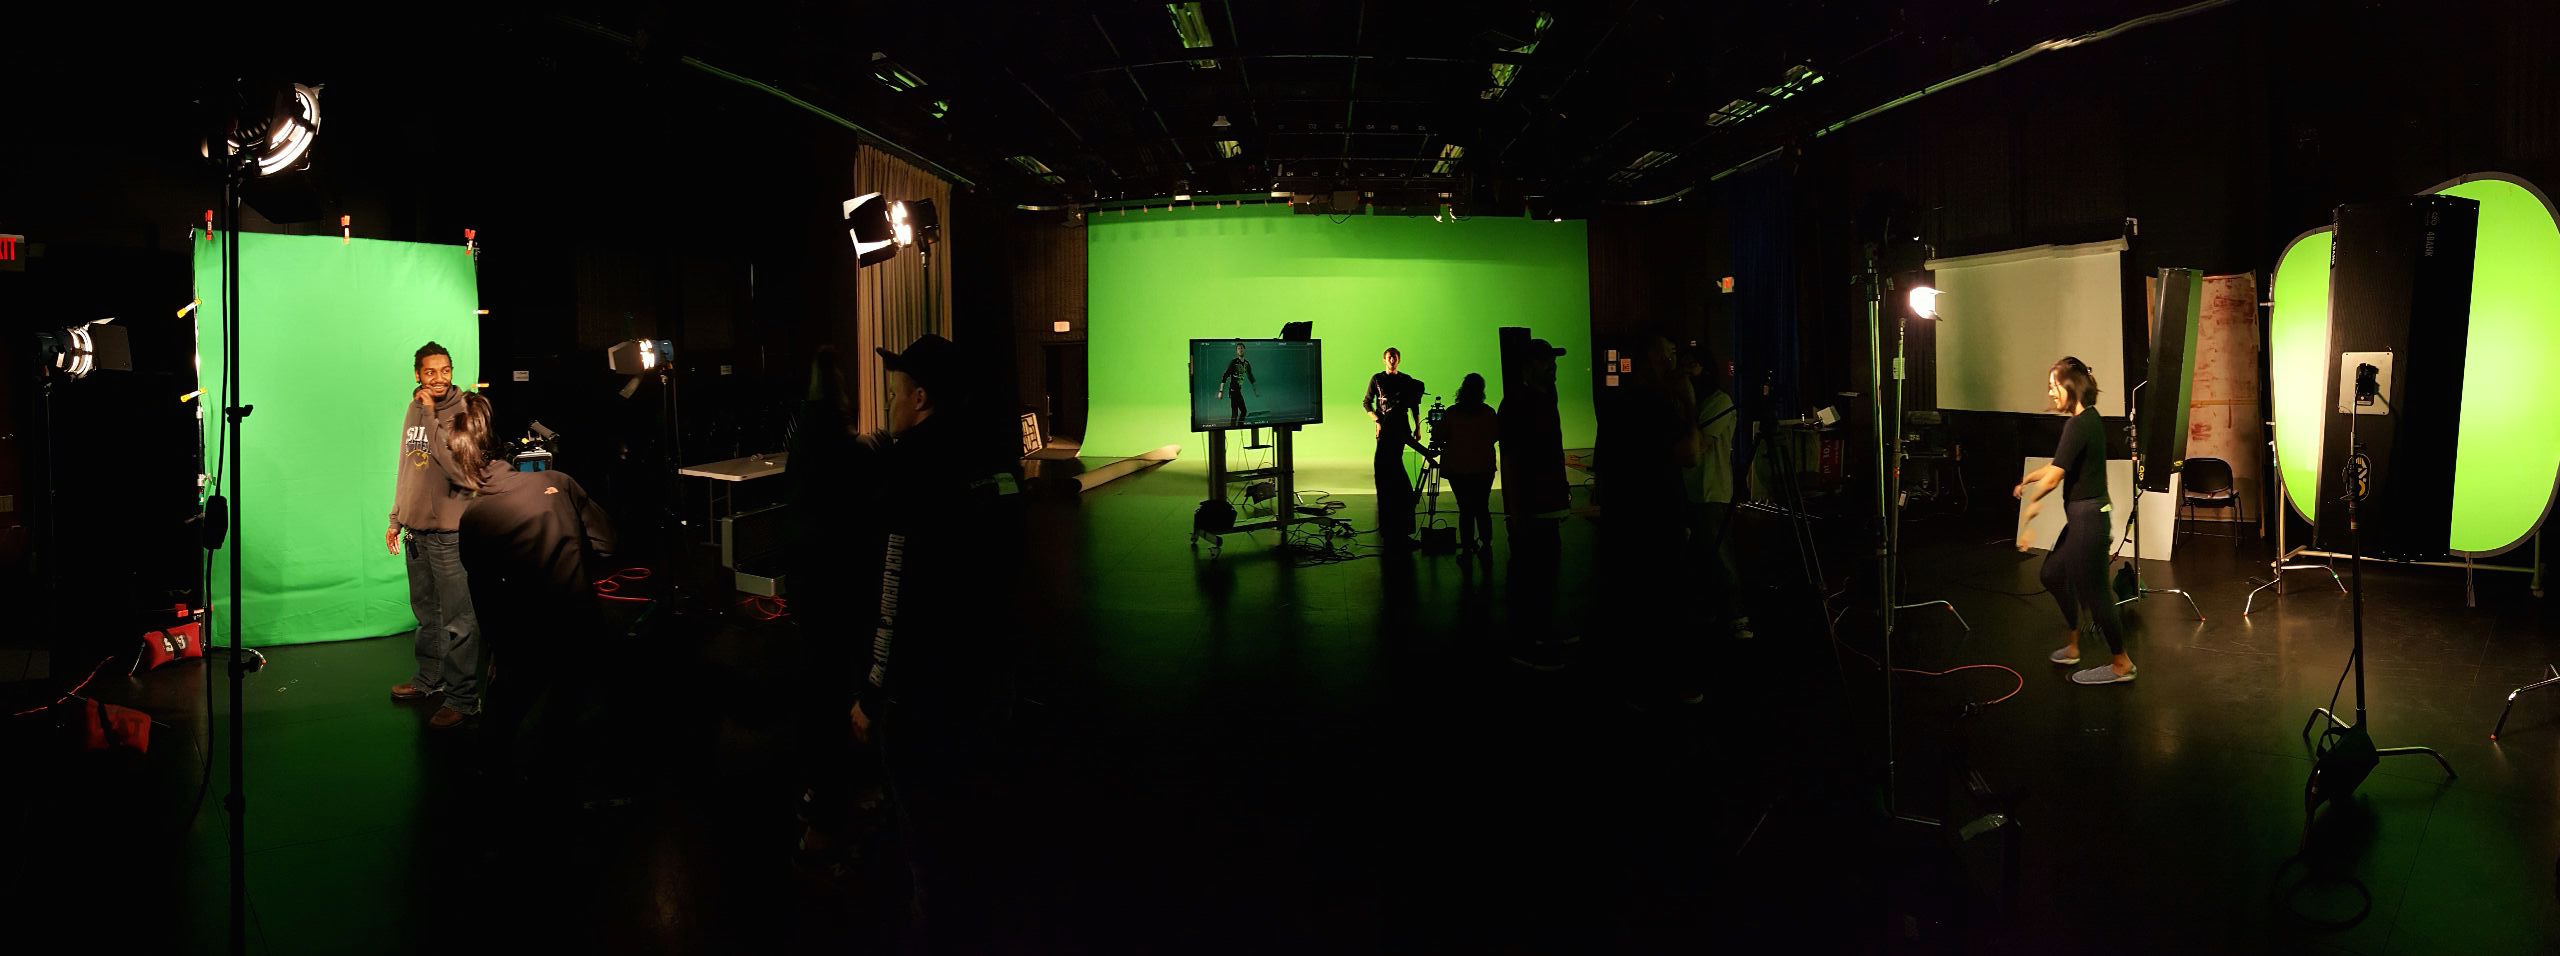 Cinematic Arts studio with students working with green screen and lighting.